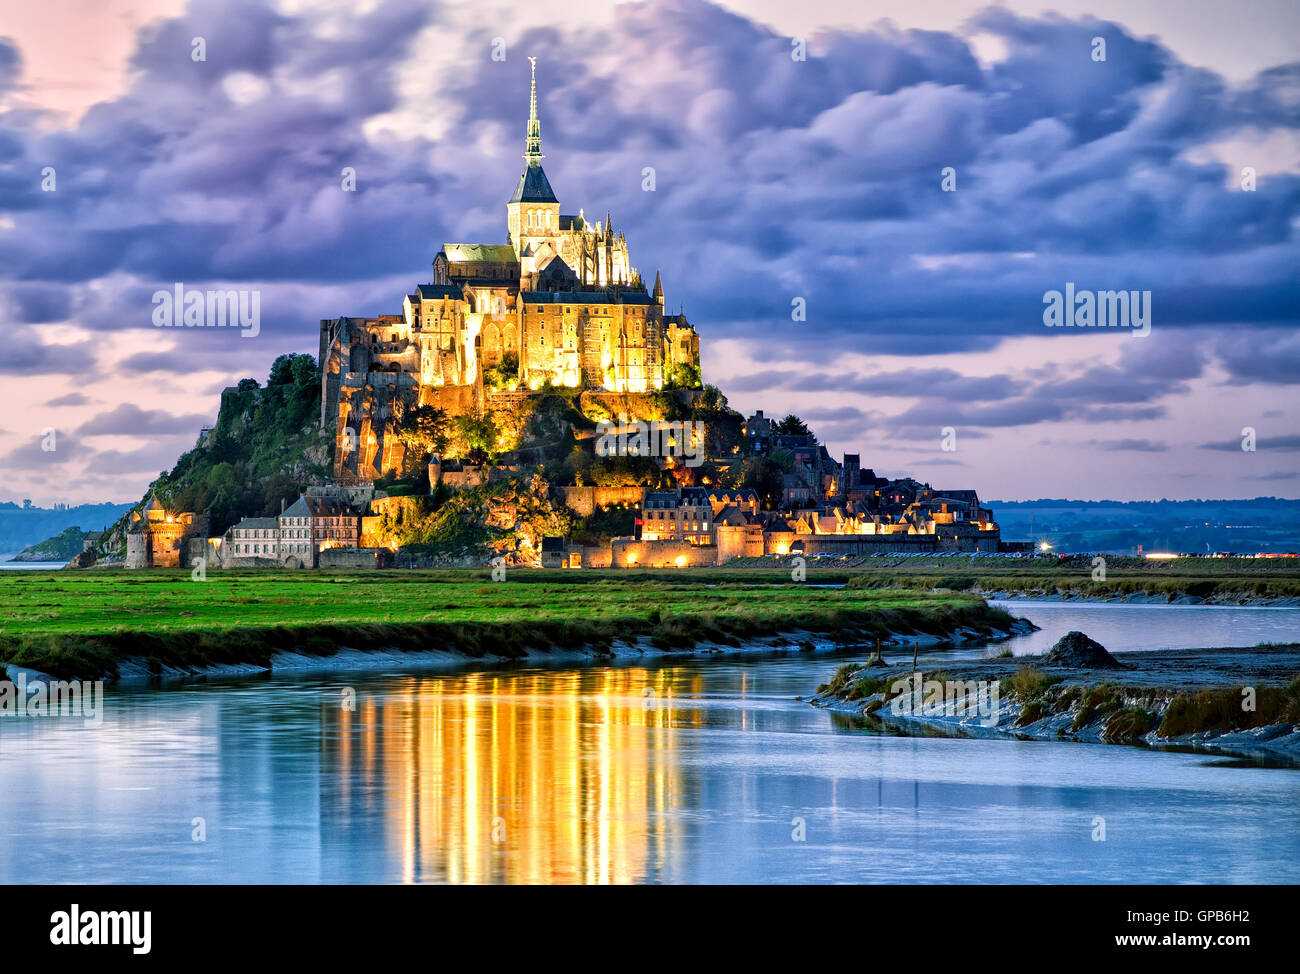 Mont Saint-Michel is one of France's most recognizable landmarks, listed on UNESCO list of World Heritage Sites. Stock Photo